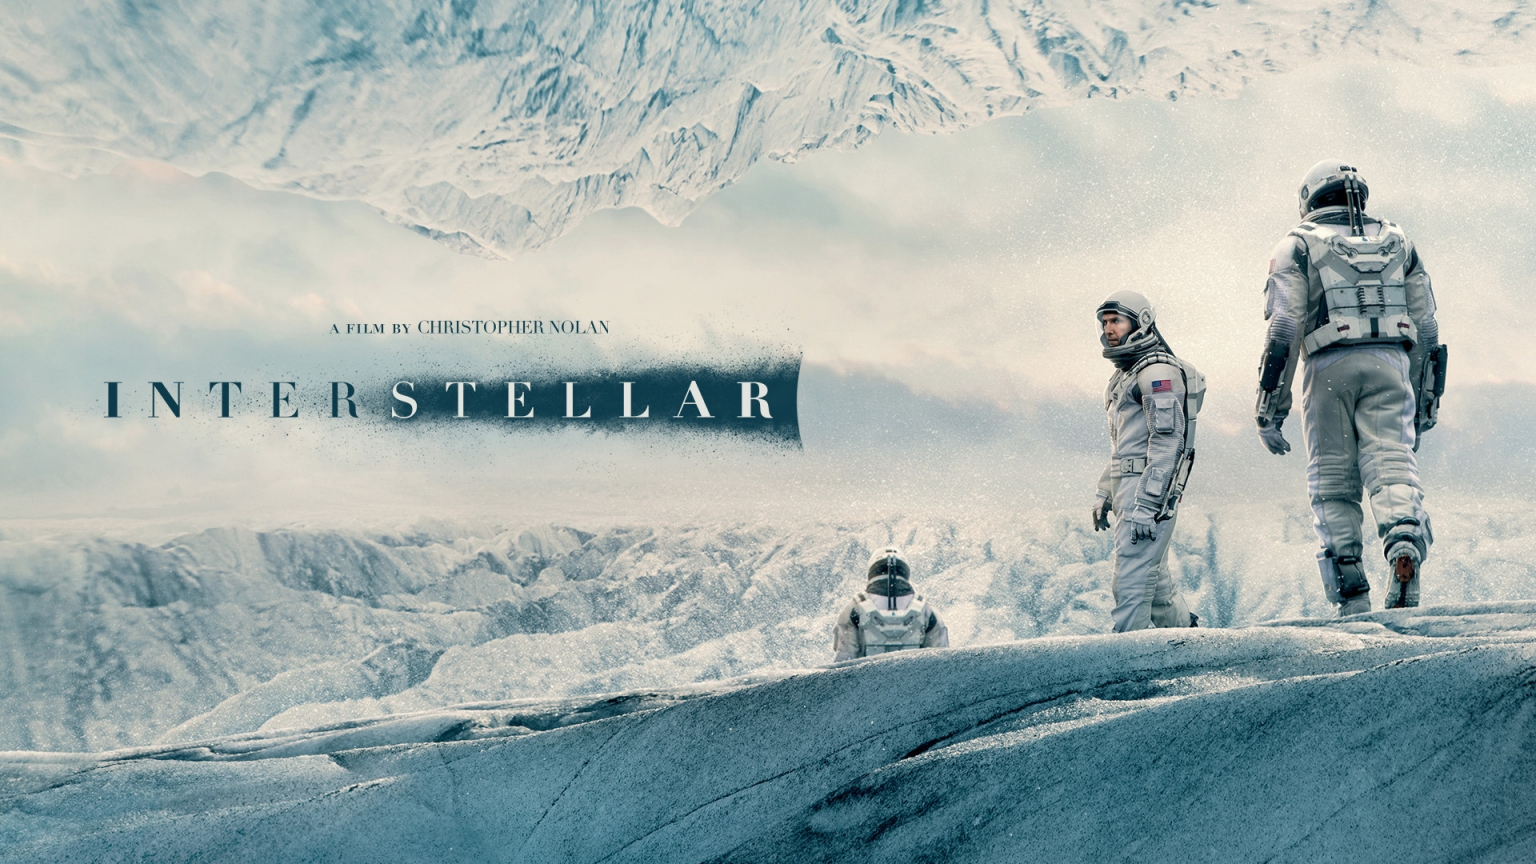 Interstellar Movie for 1536 x 864 HDTV resolution